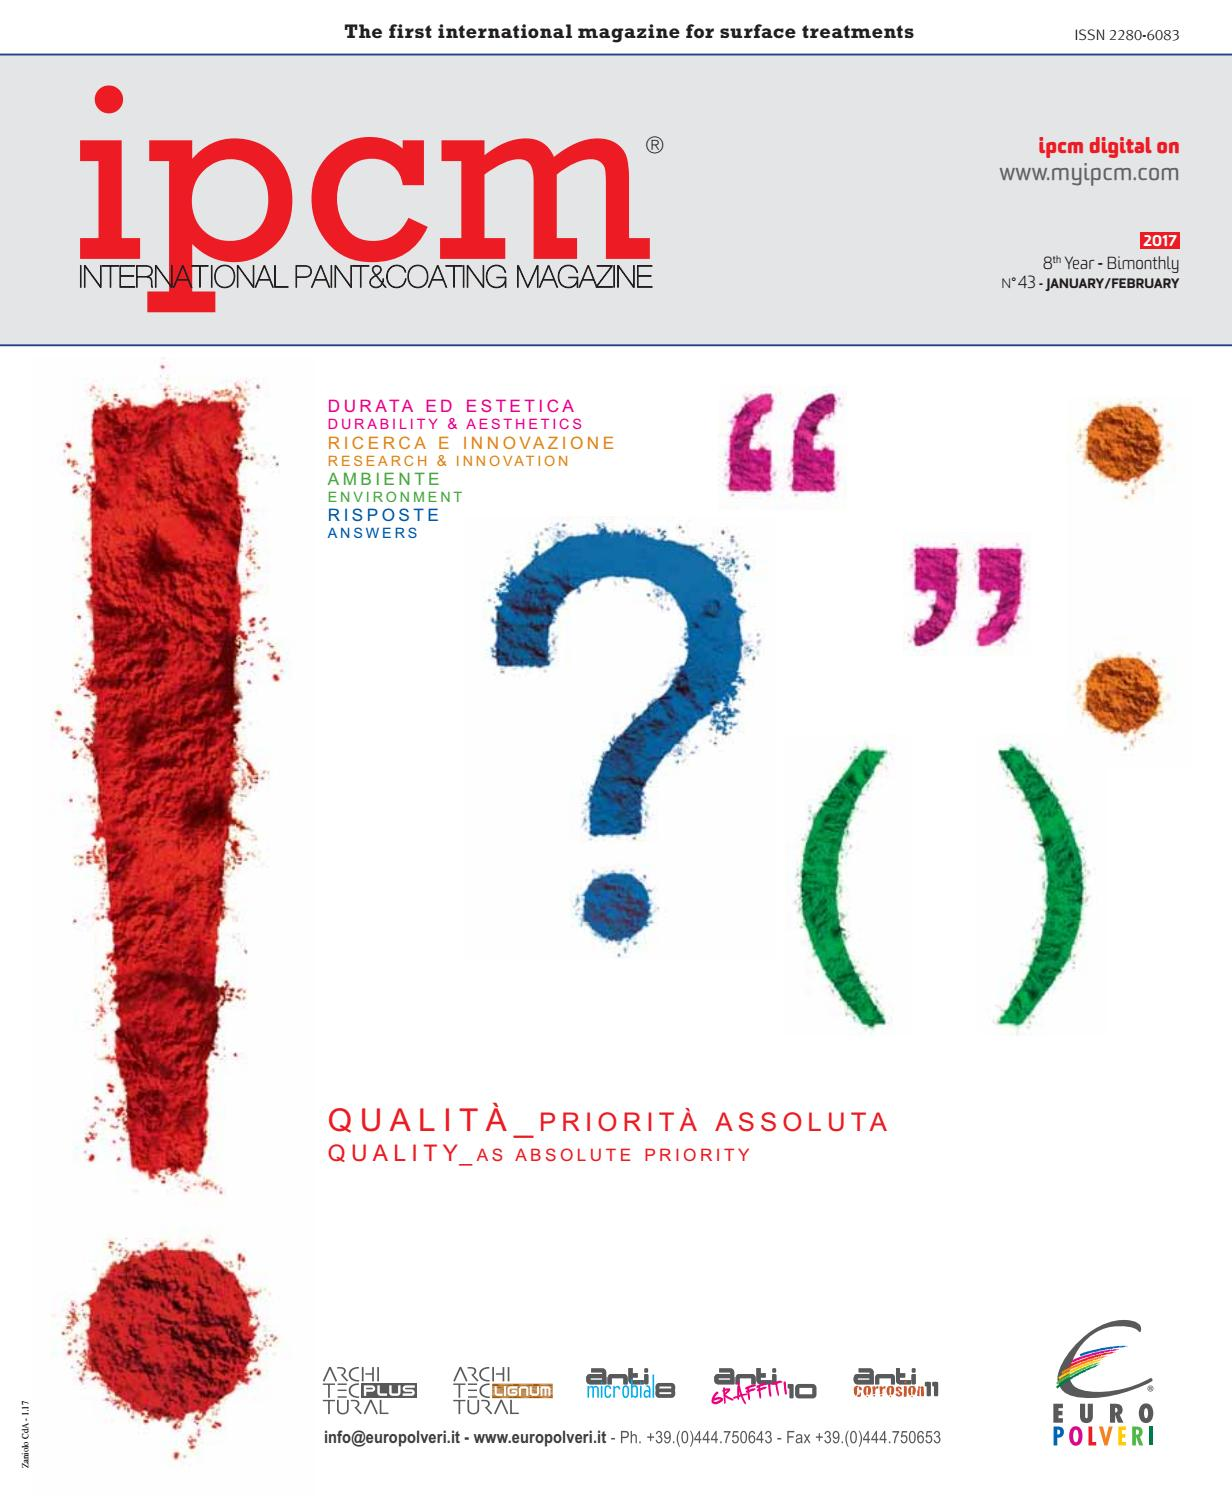 ipcm n 43 magazine \u2013 january february 2017 \u2013 english version byipcm n 43 magazine \u2013 january february 2017 \u2013 english version by ipcm® international paint\u0026coating magazine issuu